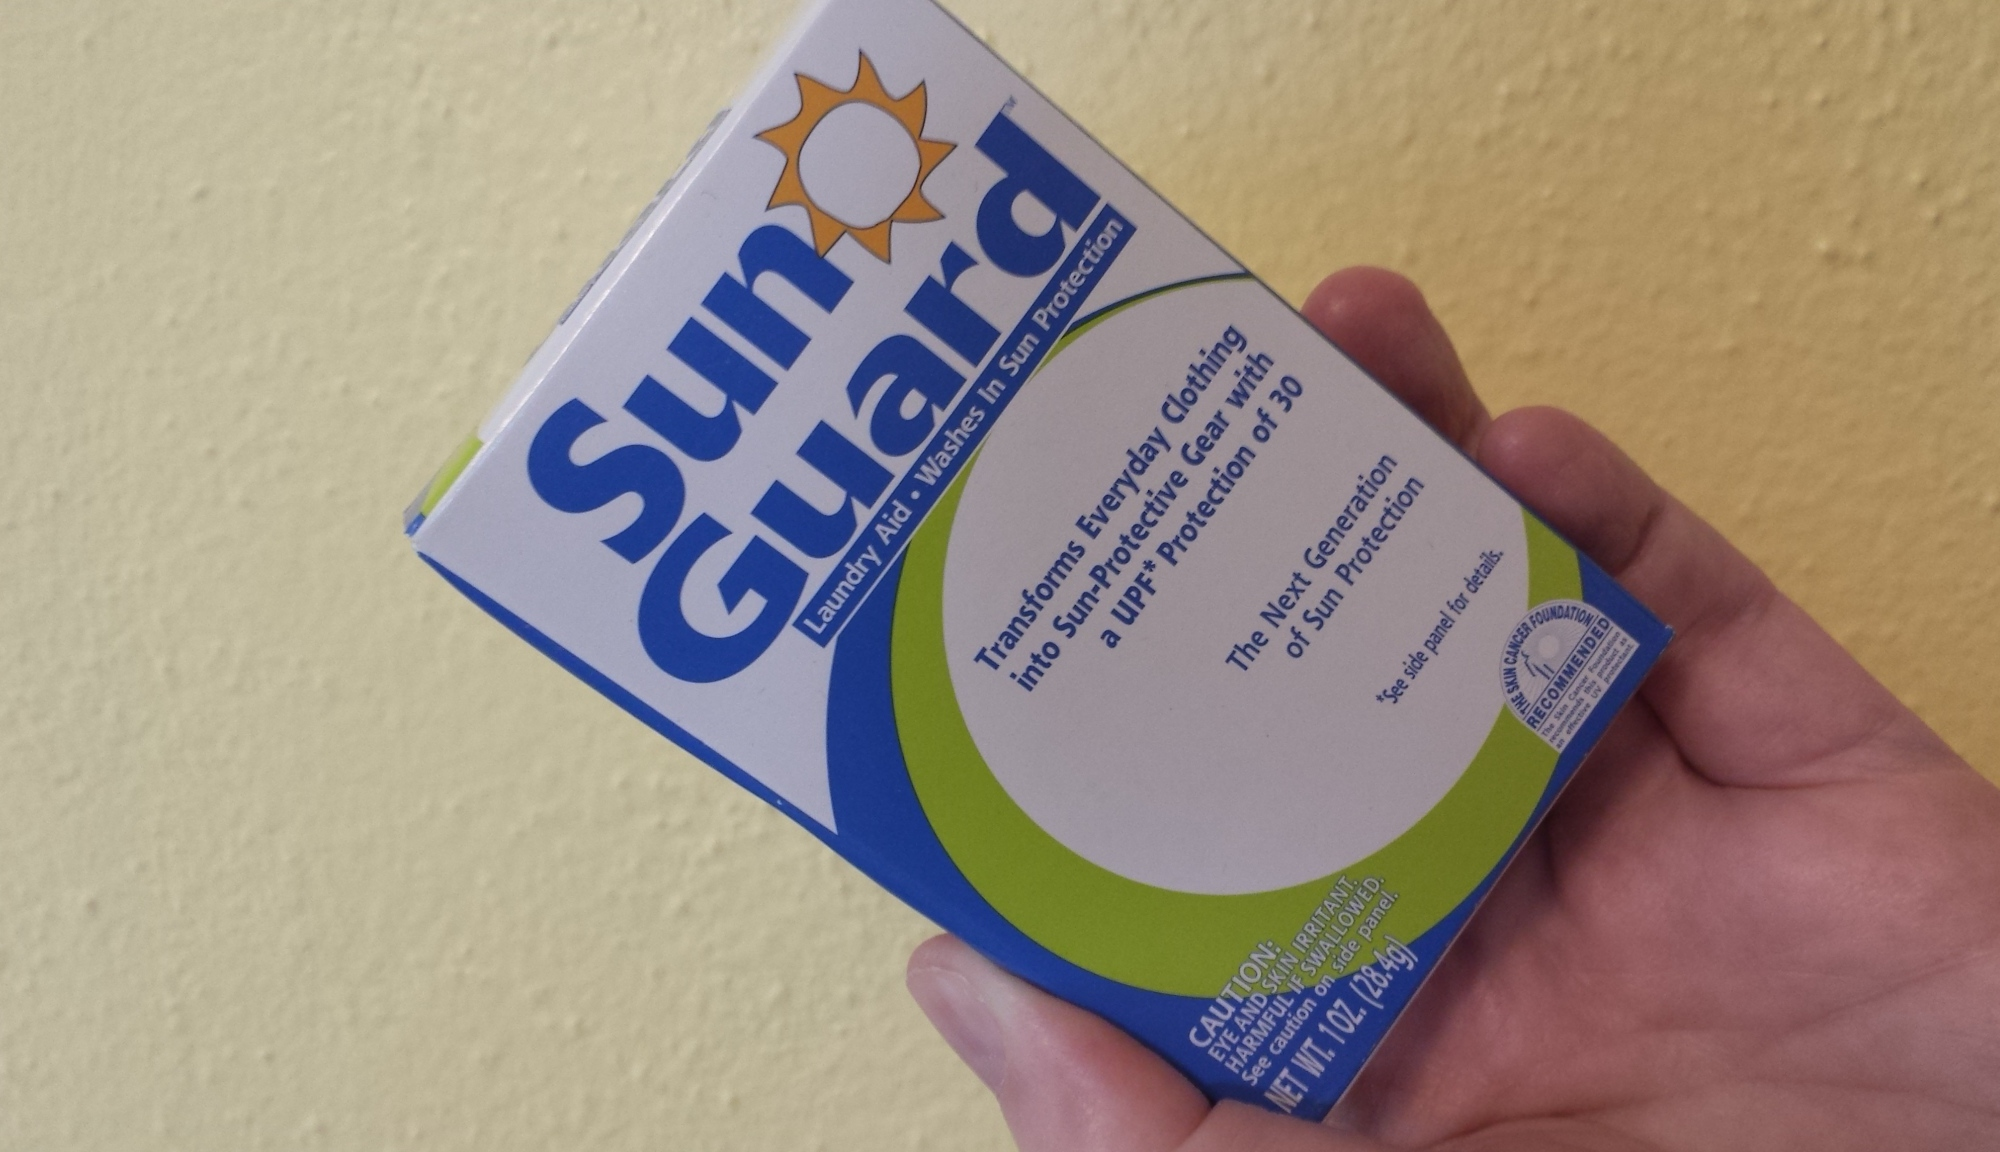 SunGuard adds UPF30 sun protection into your clothing.